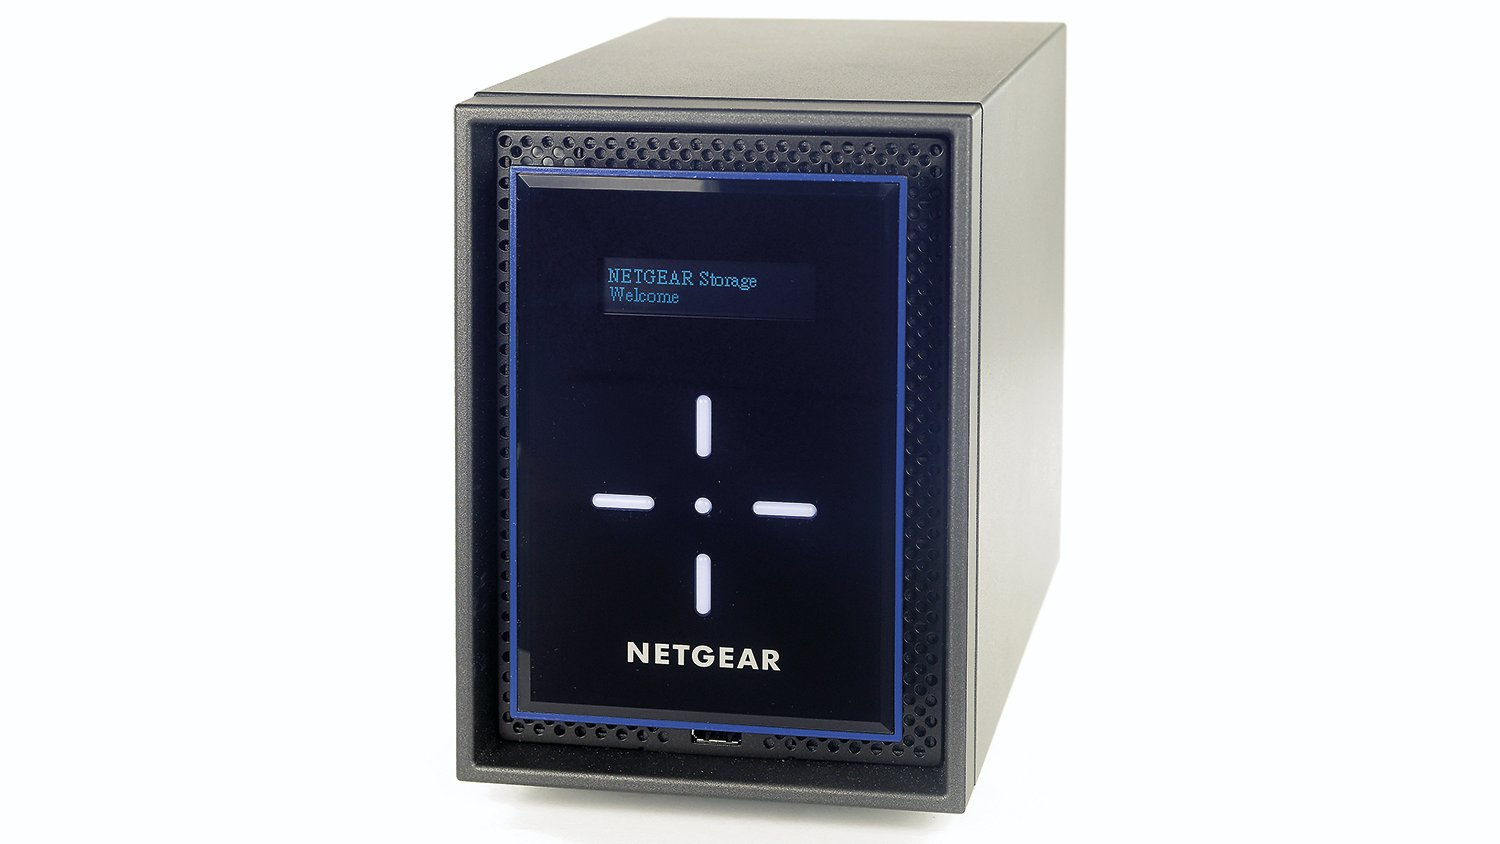 Netgear ReadyNAS 422 review: Easy to use and very fast